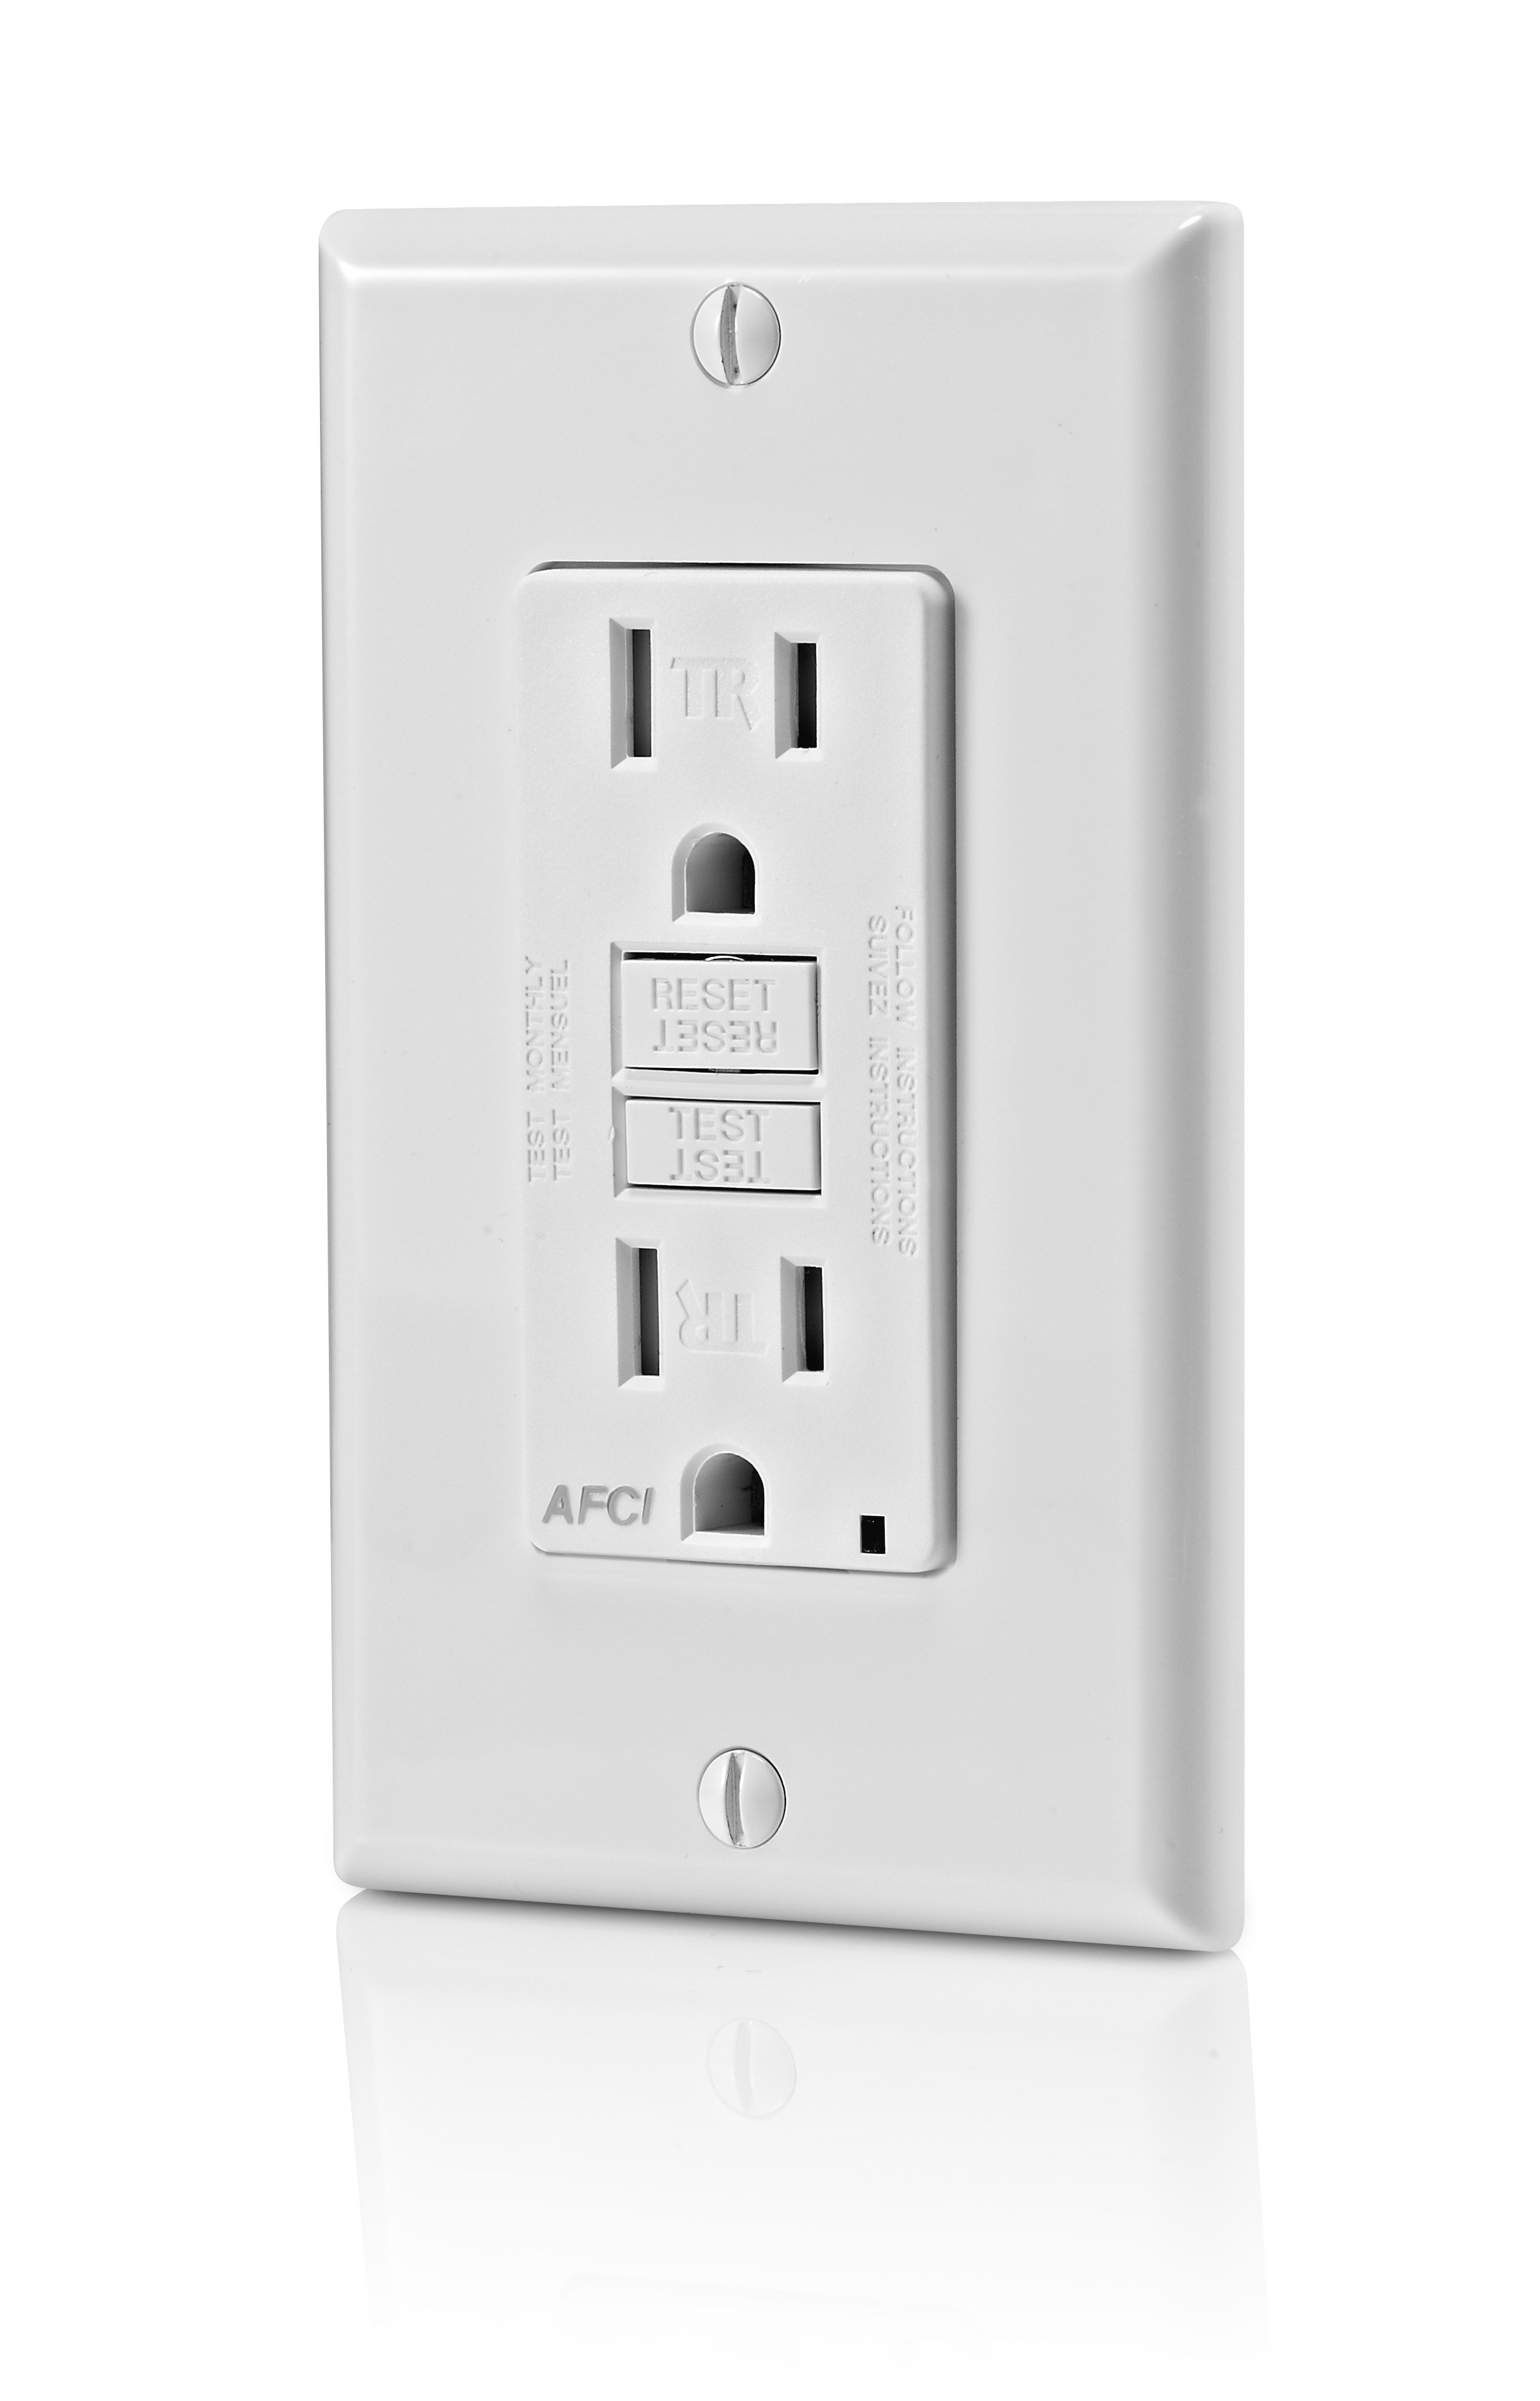 arc fault receptacle wiring with B00agyt7i6 on 536135 Wiring Kitchen Counter Outlets additionally Leviton Unveils Smartlockpro Dual Function Afci Gfci Receptacle 18386 besides Iec Symbol Reference moreover Arc Fault Circuit Interrupter Afci Receptacles 513 moreover 2418.